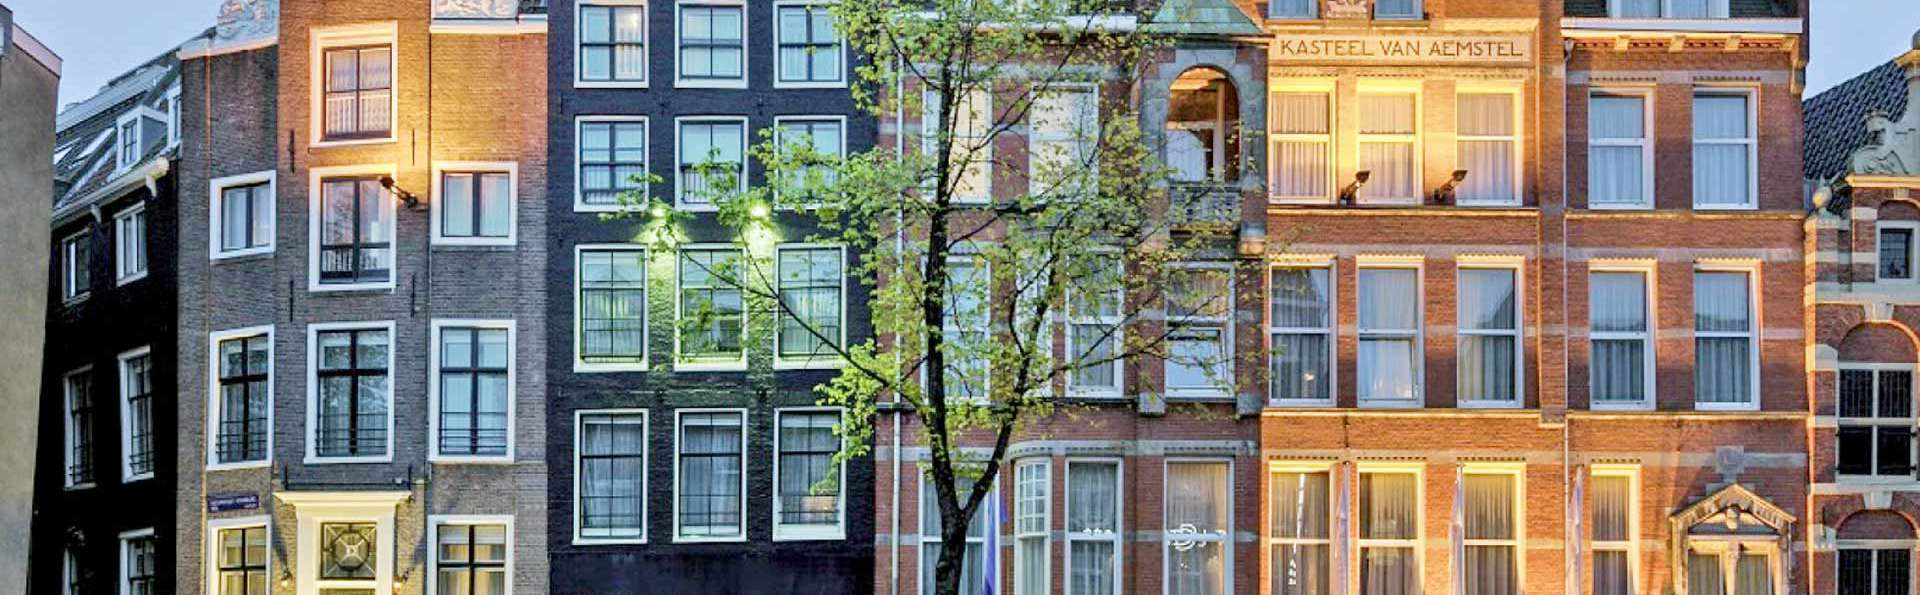 INK Hotel Amsterdam - MGallery Collection - Edit_Exterior-INK.jpg